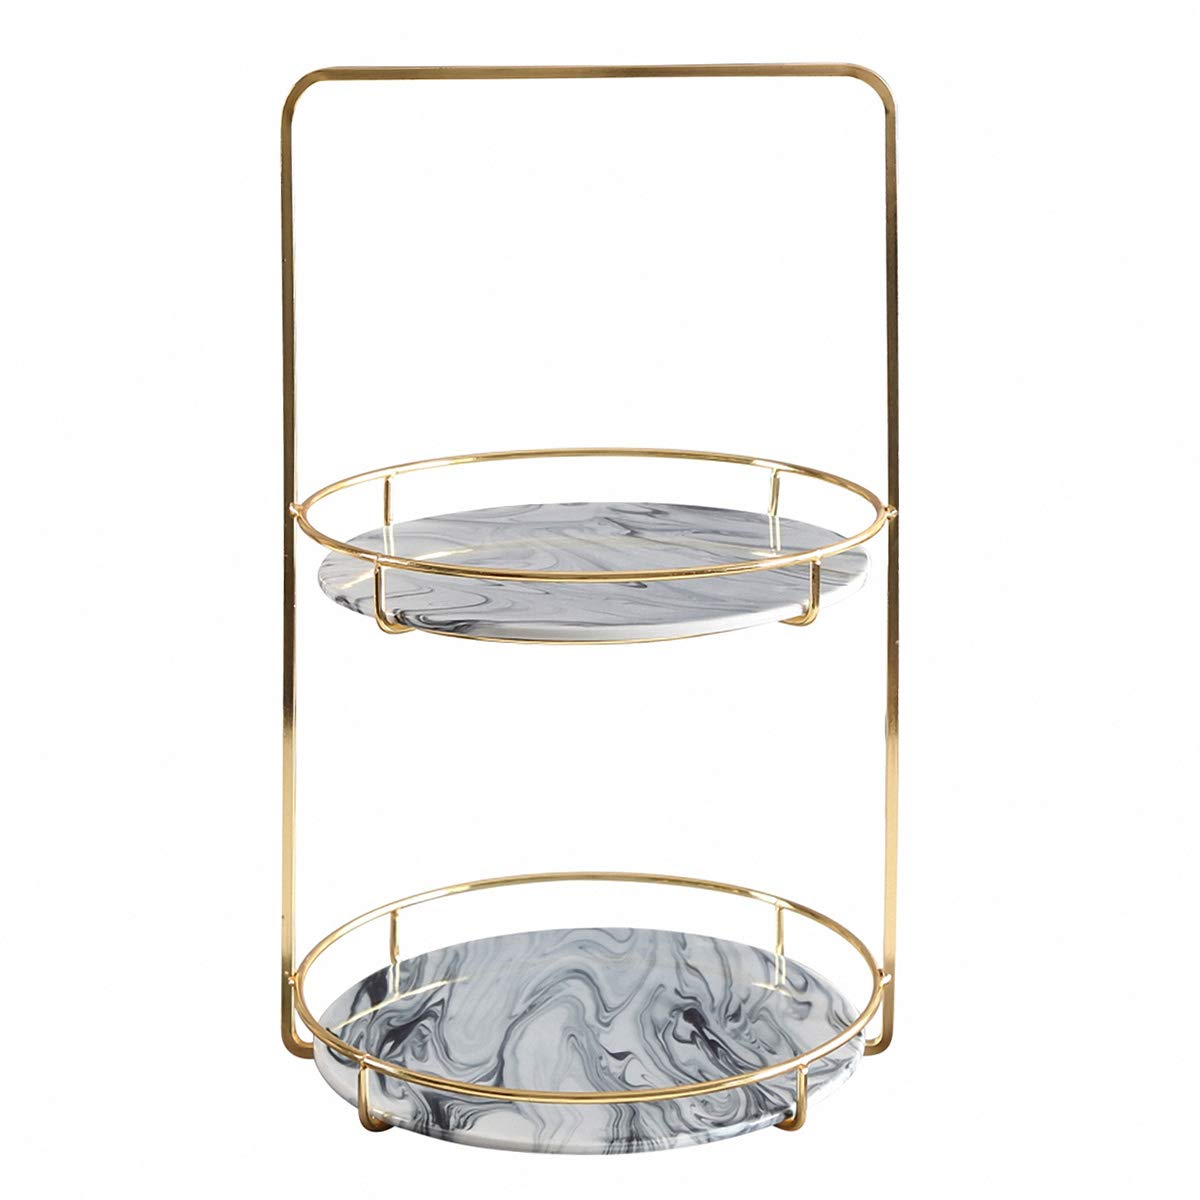 ALPS Marble Jewelry Tray with Polished Gold Metal Handles